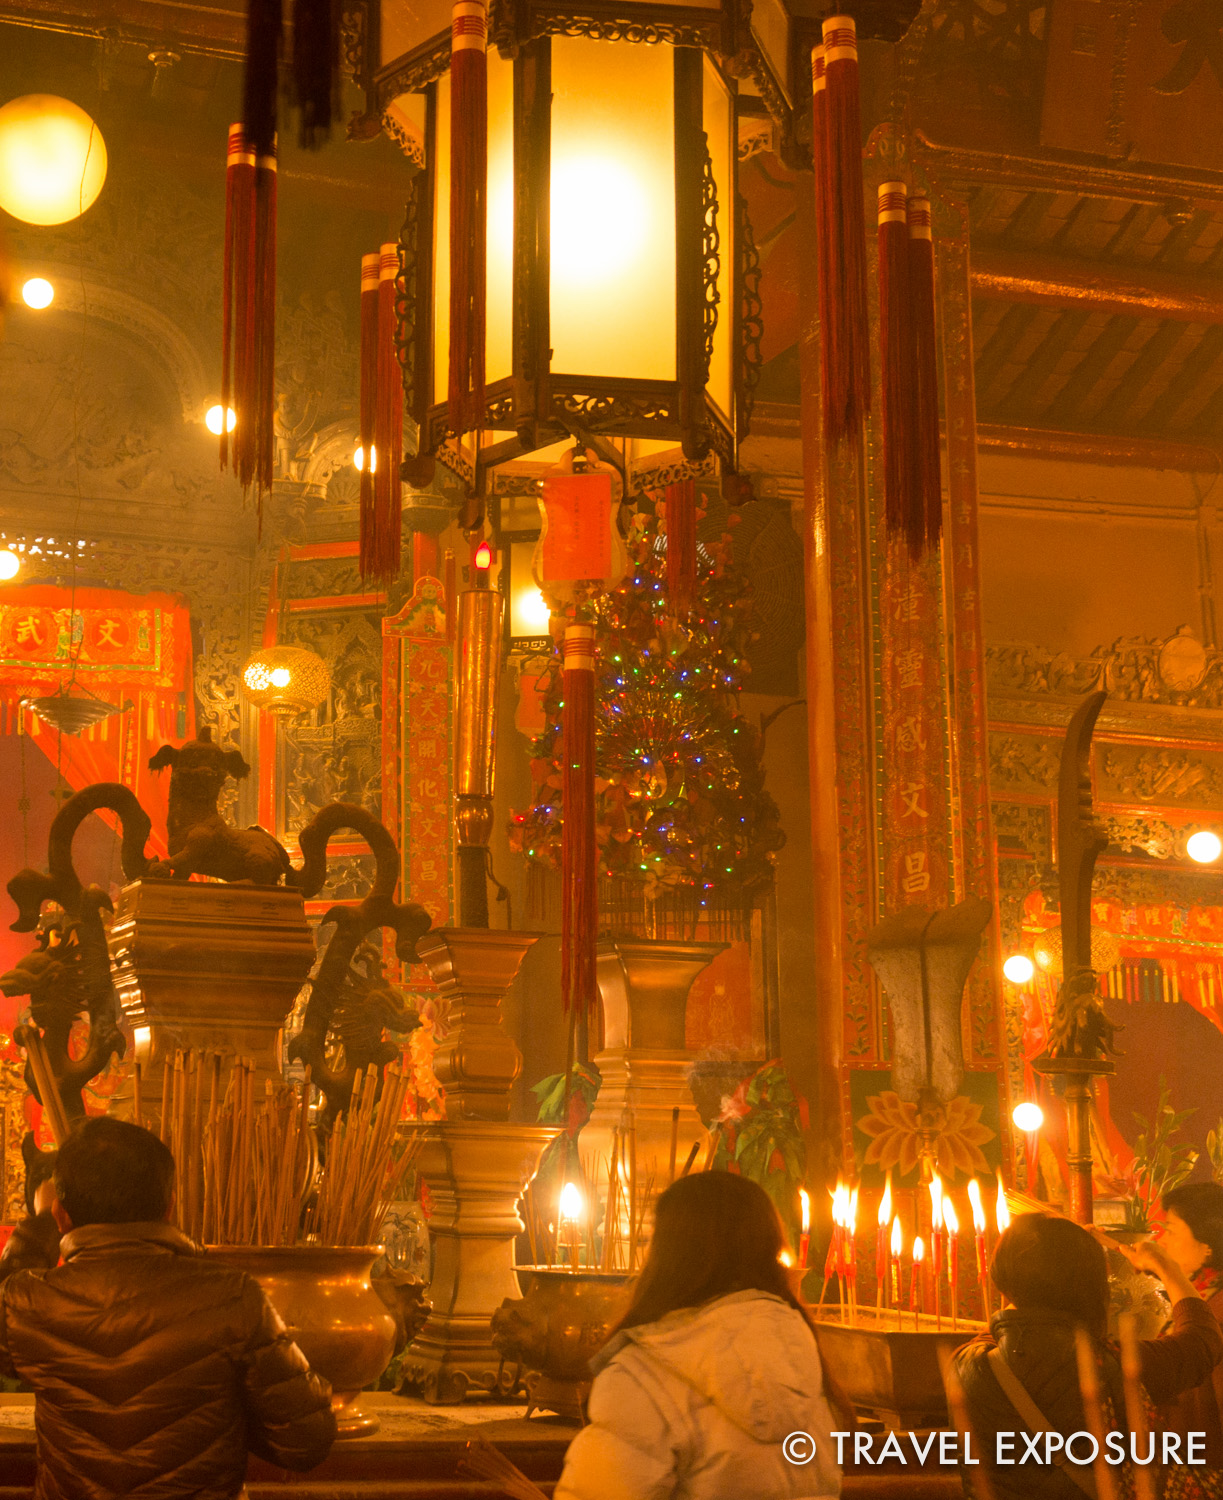 Inside the Man Mo temple, worshippers light incense sticks and place them in bronze urns to bring good fortune